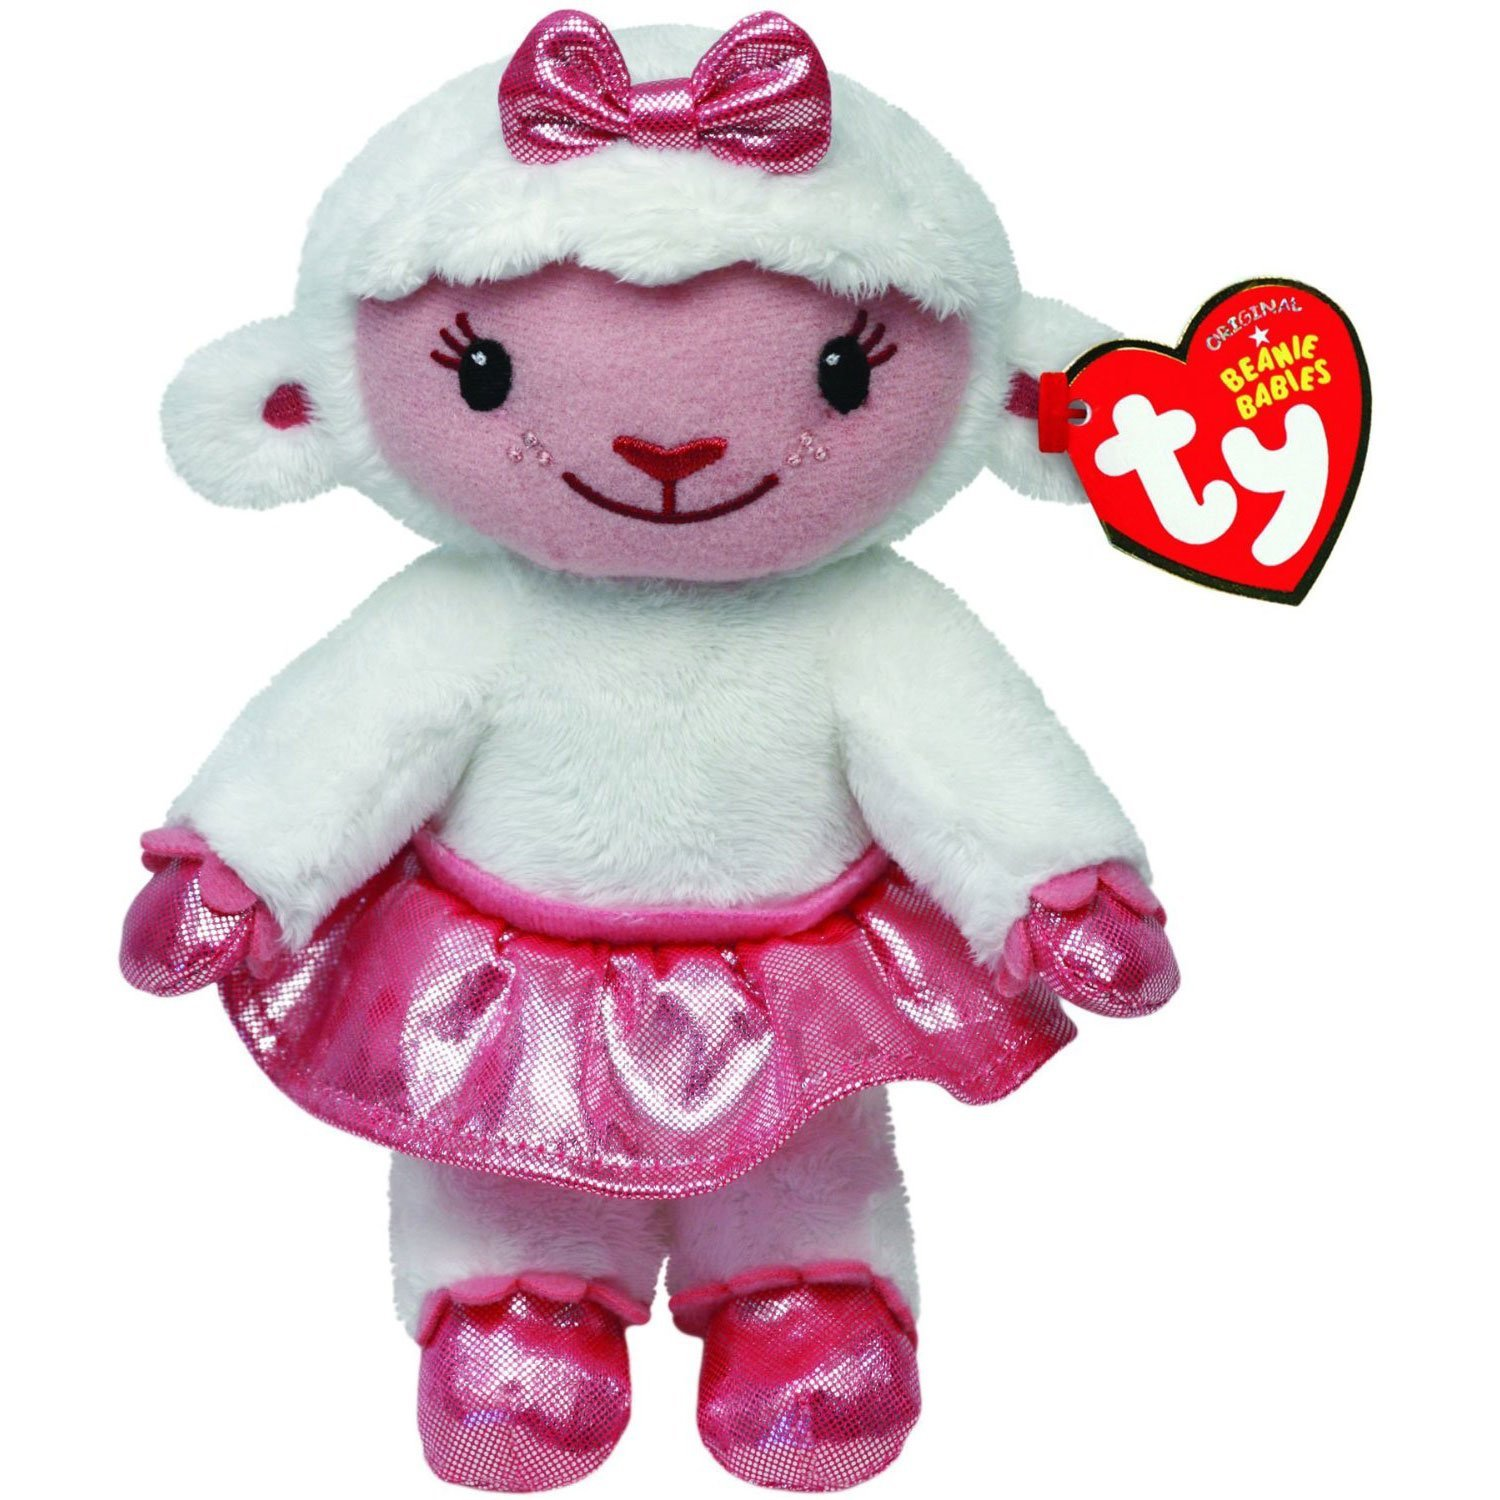 5974b2e76d1 Get Quotations · Lambie Lamb Beanie Medium - Stuffed Animal by Ty (90155)  by Ty Beanies